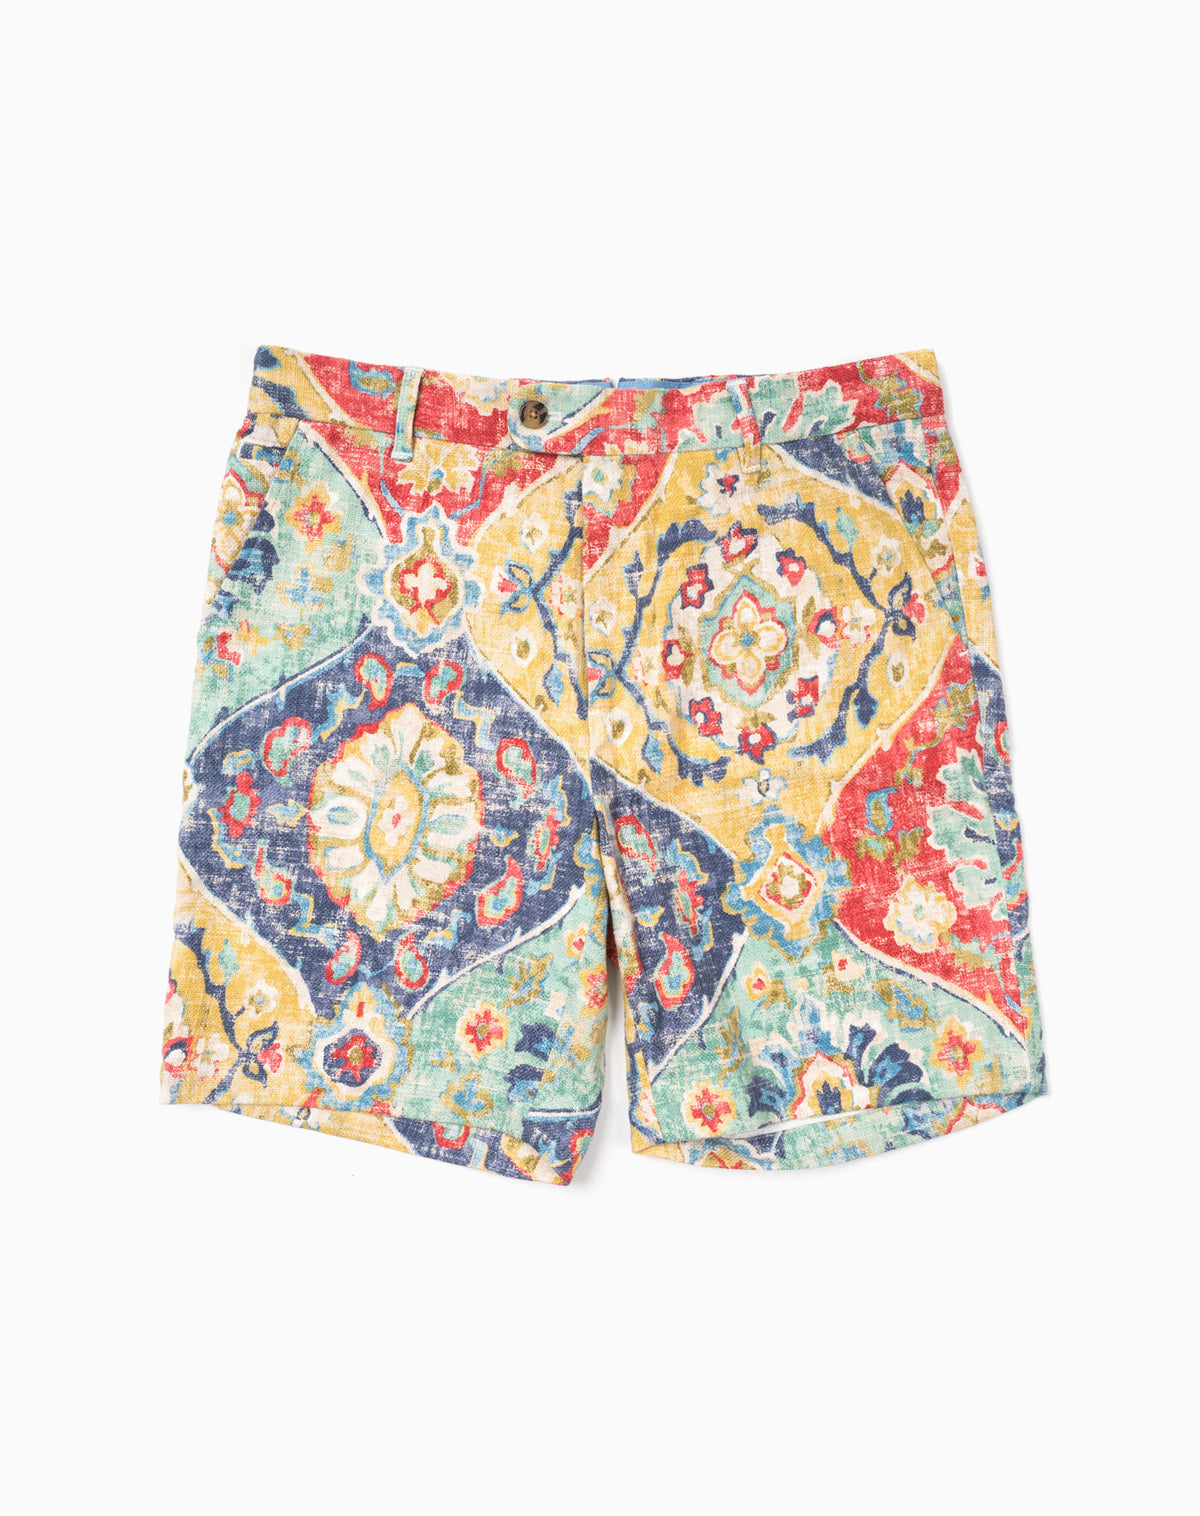 Printed Short in Ikat